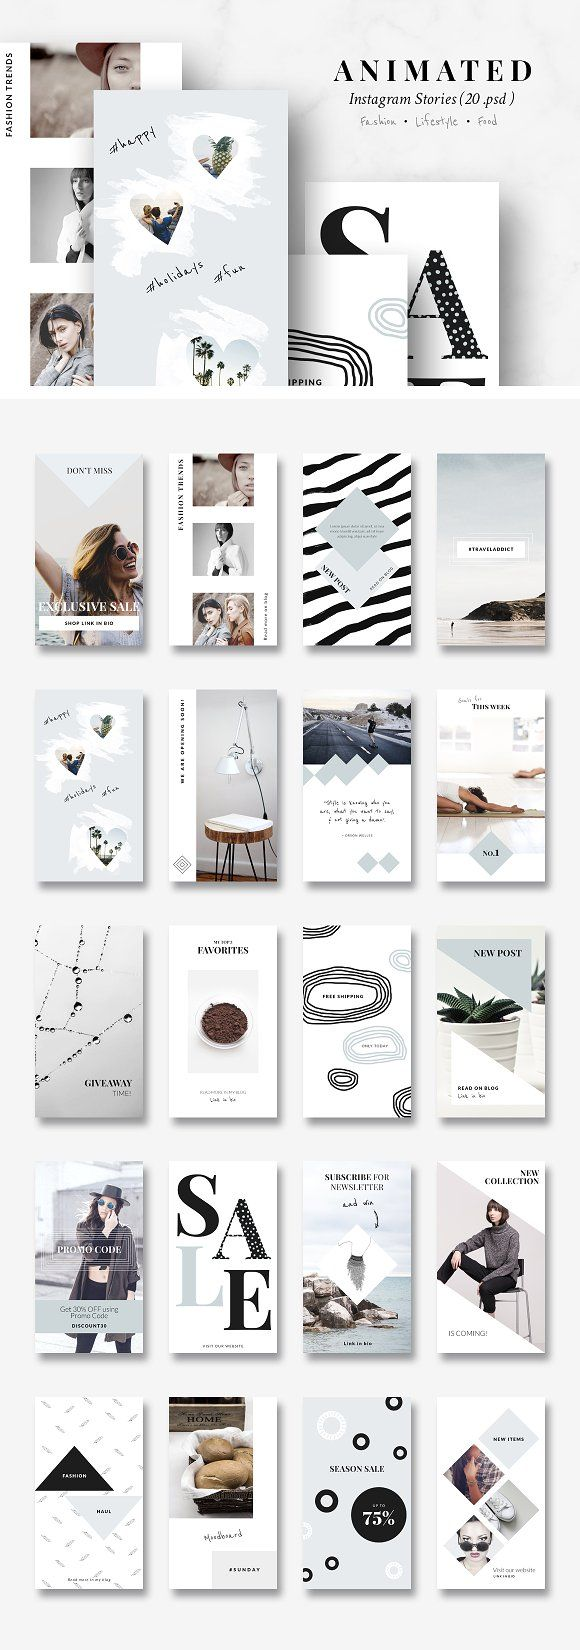 ANIMATED Instagram Story-Pastel blue by CreativeFolks on @creativemarket